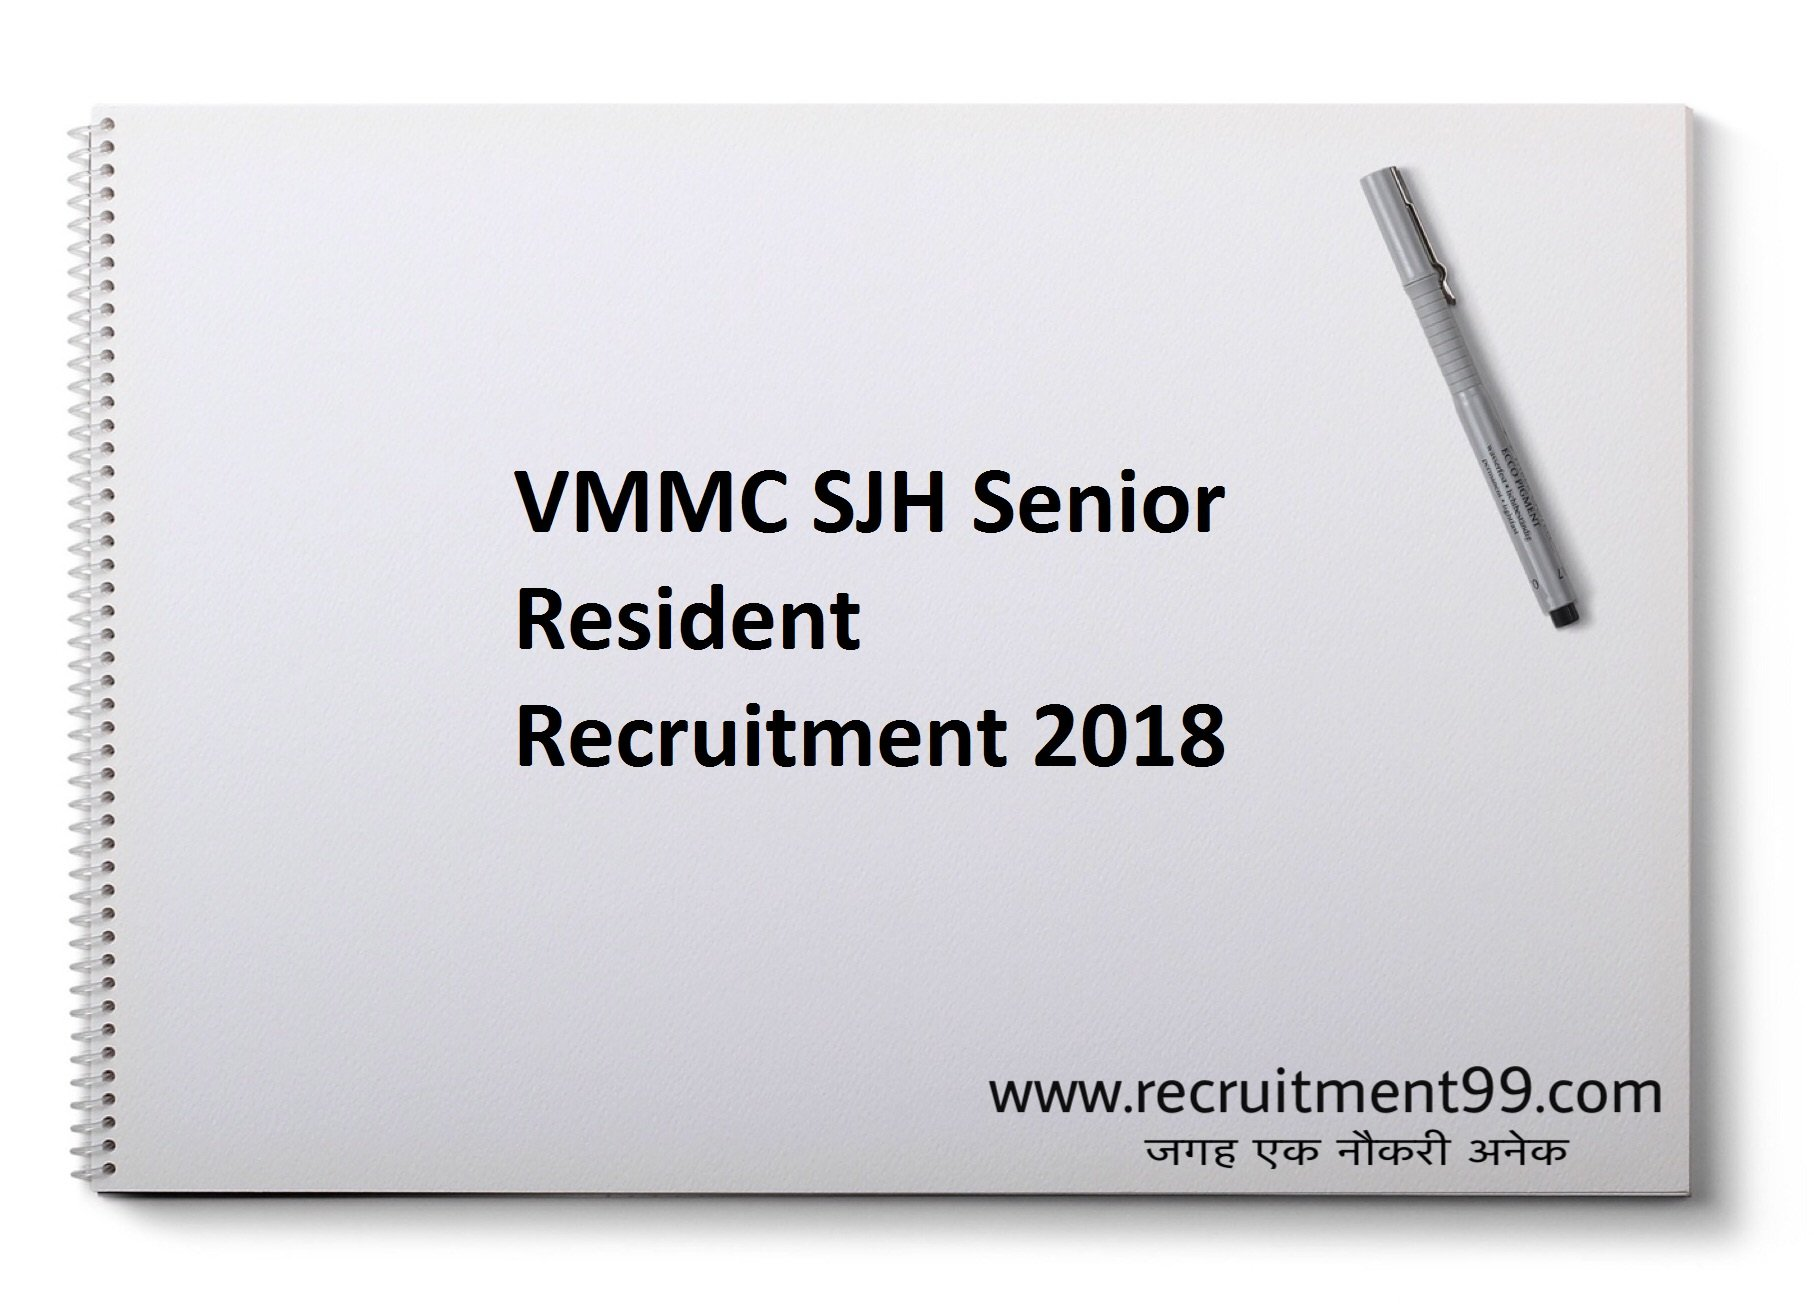 VMMC SJH Senior Resident Recruitment Admit Card Result 2018